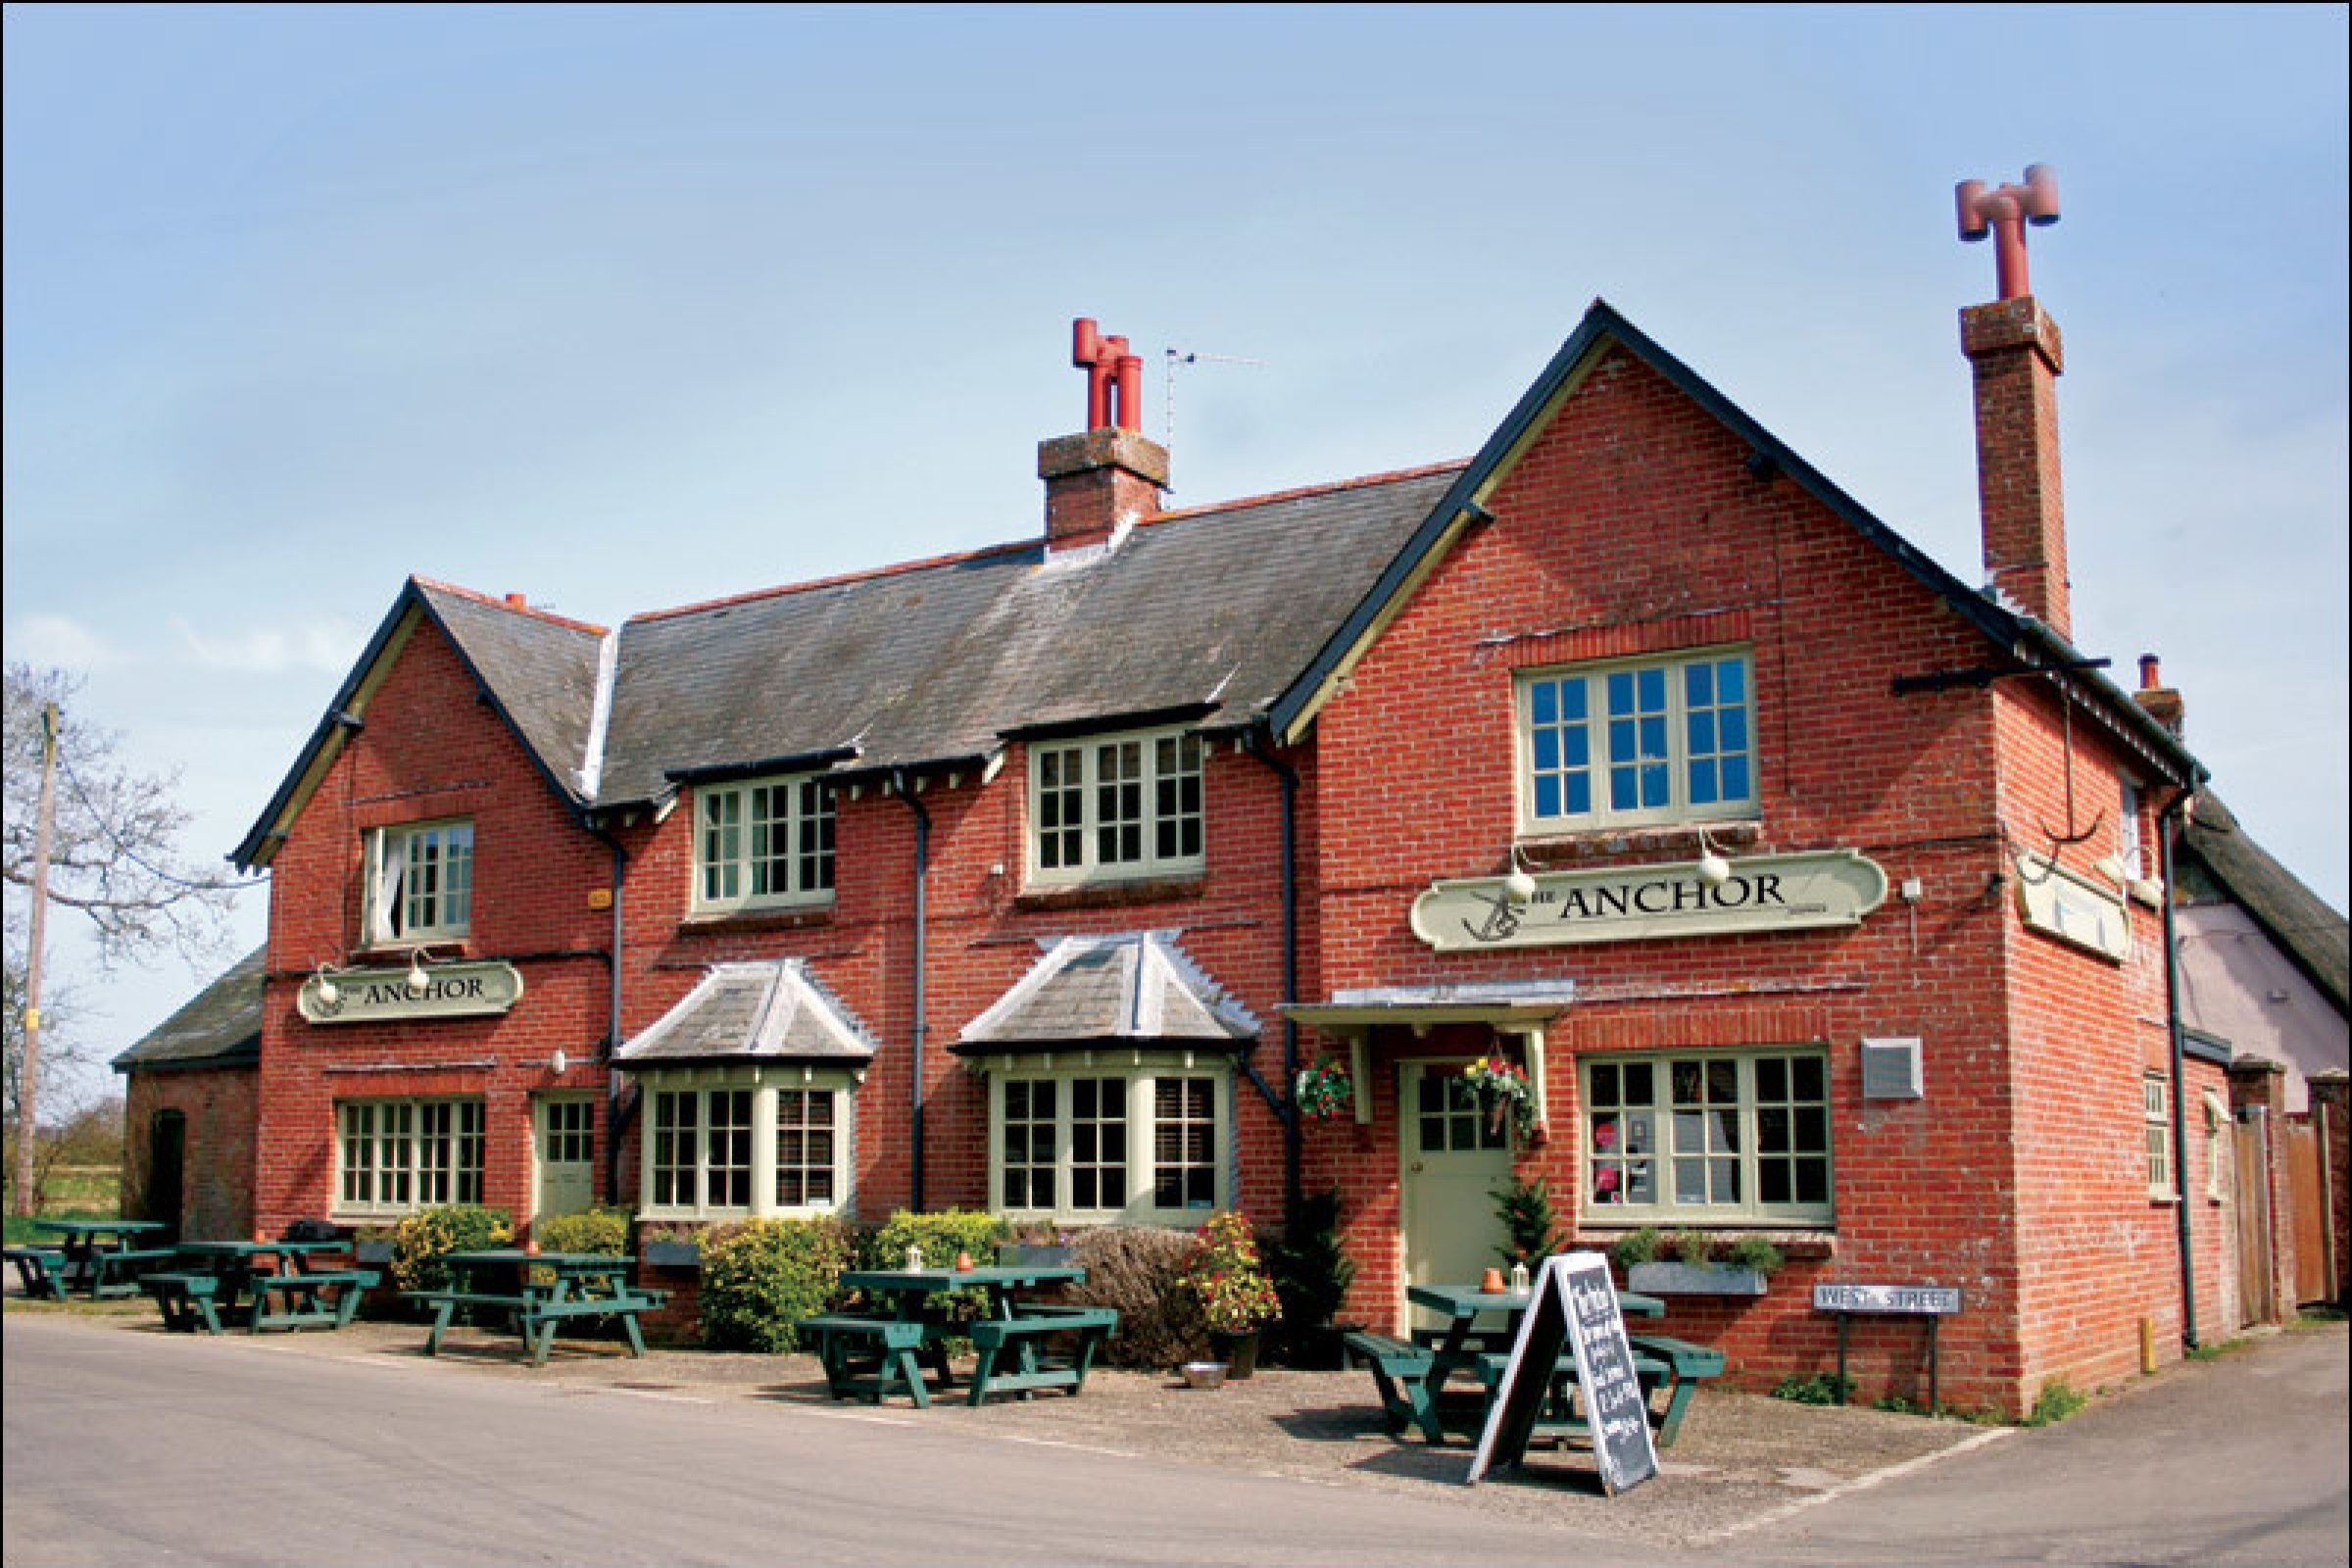 The Anchor Inn is one of the best countryside pubs in Dorset.